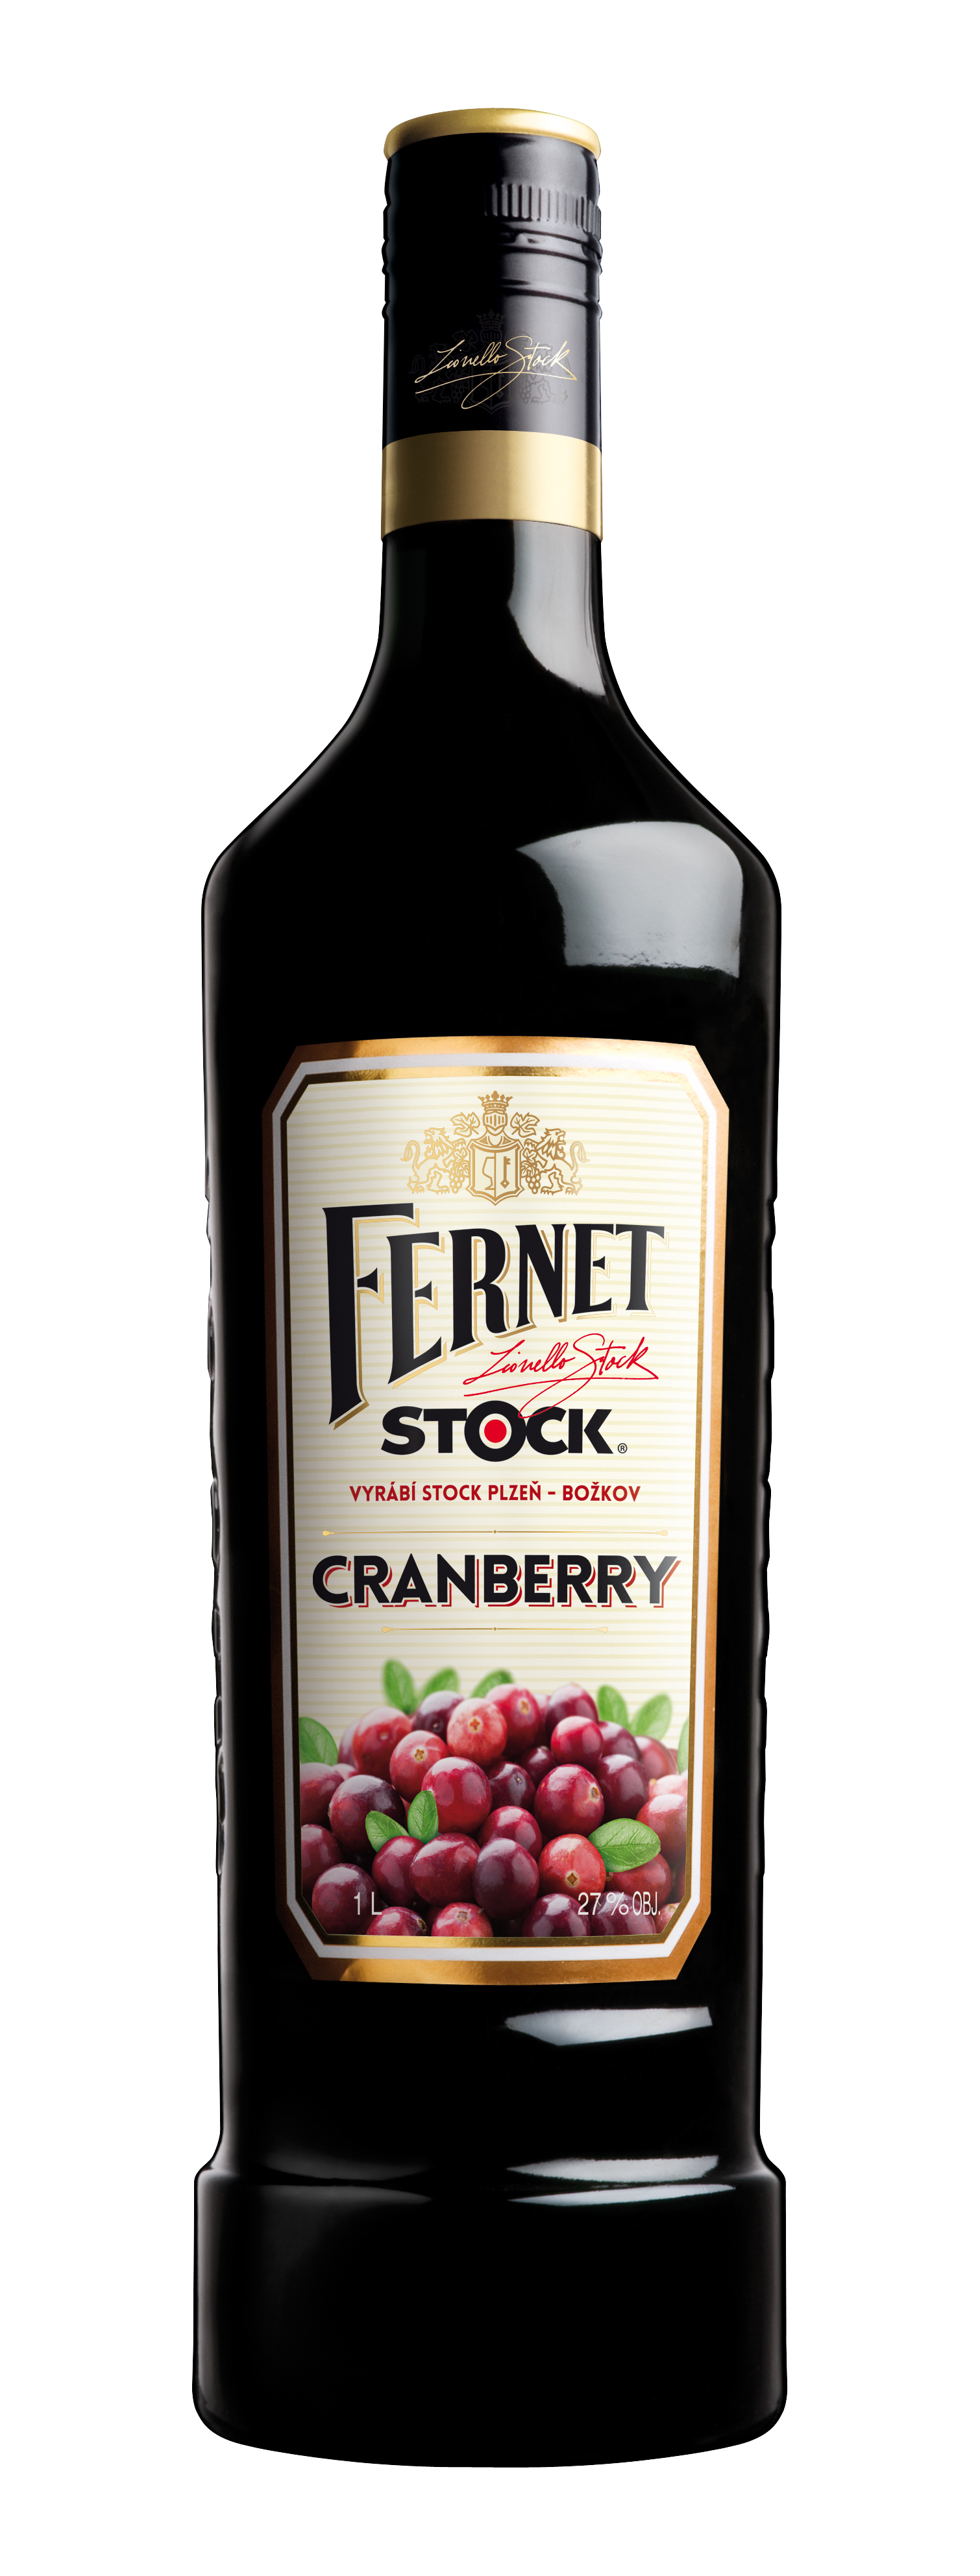 FERNET STOCK CRANBERRY - 1L  27%